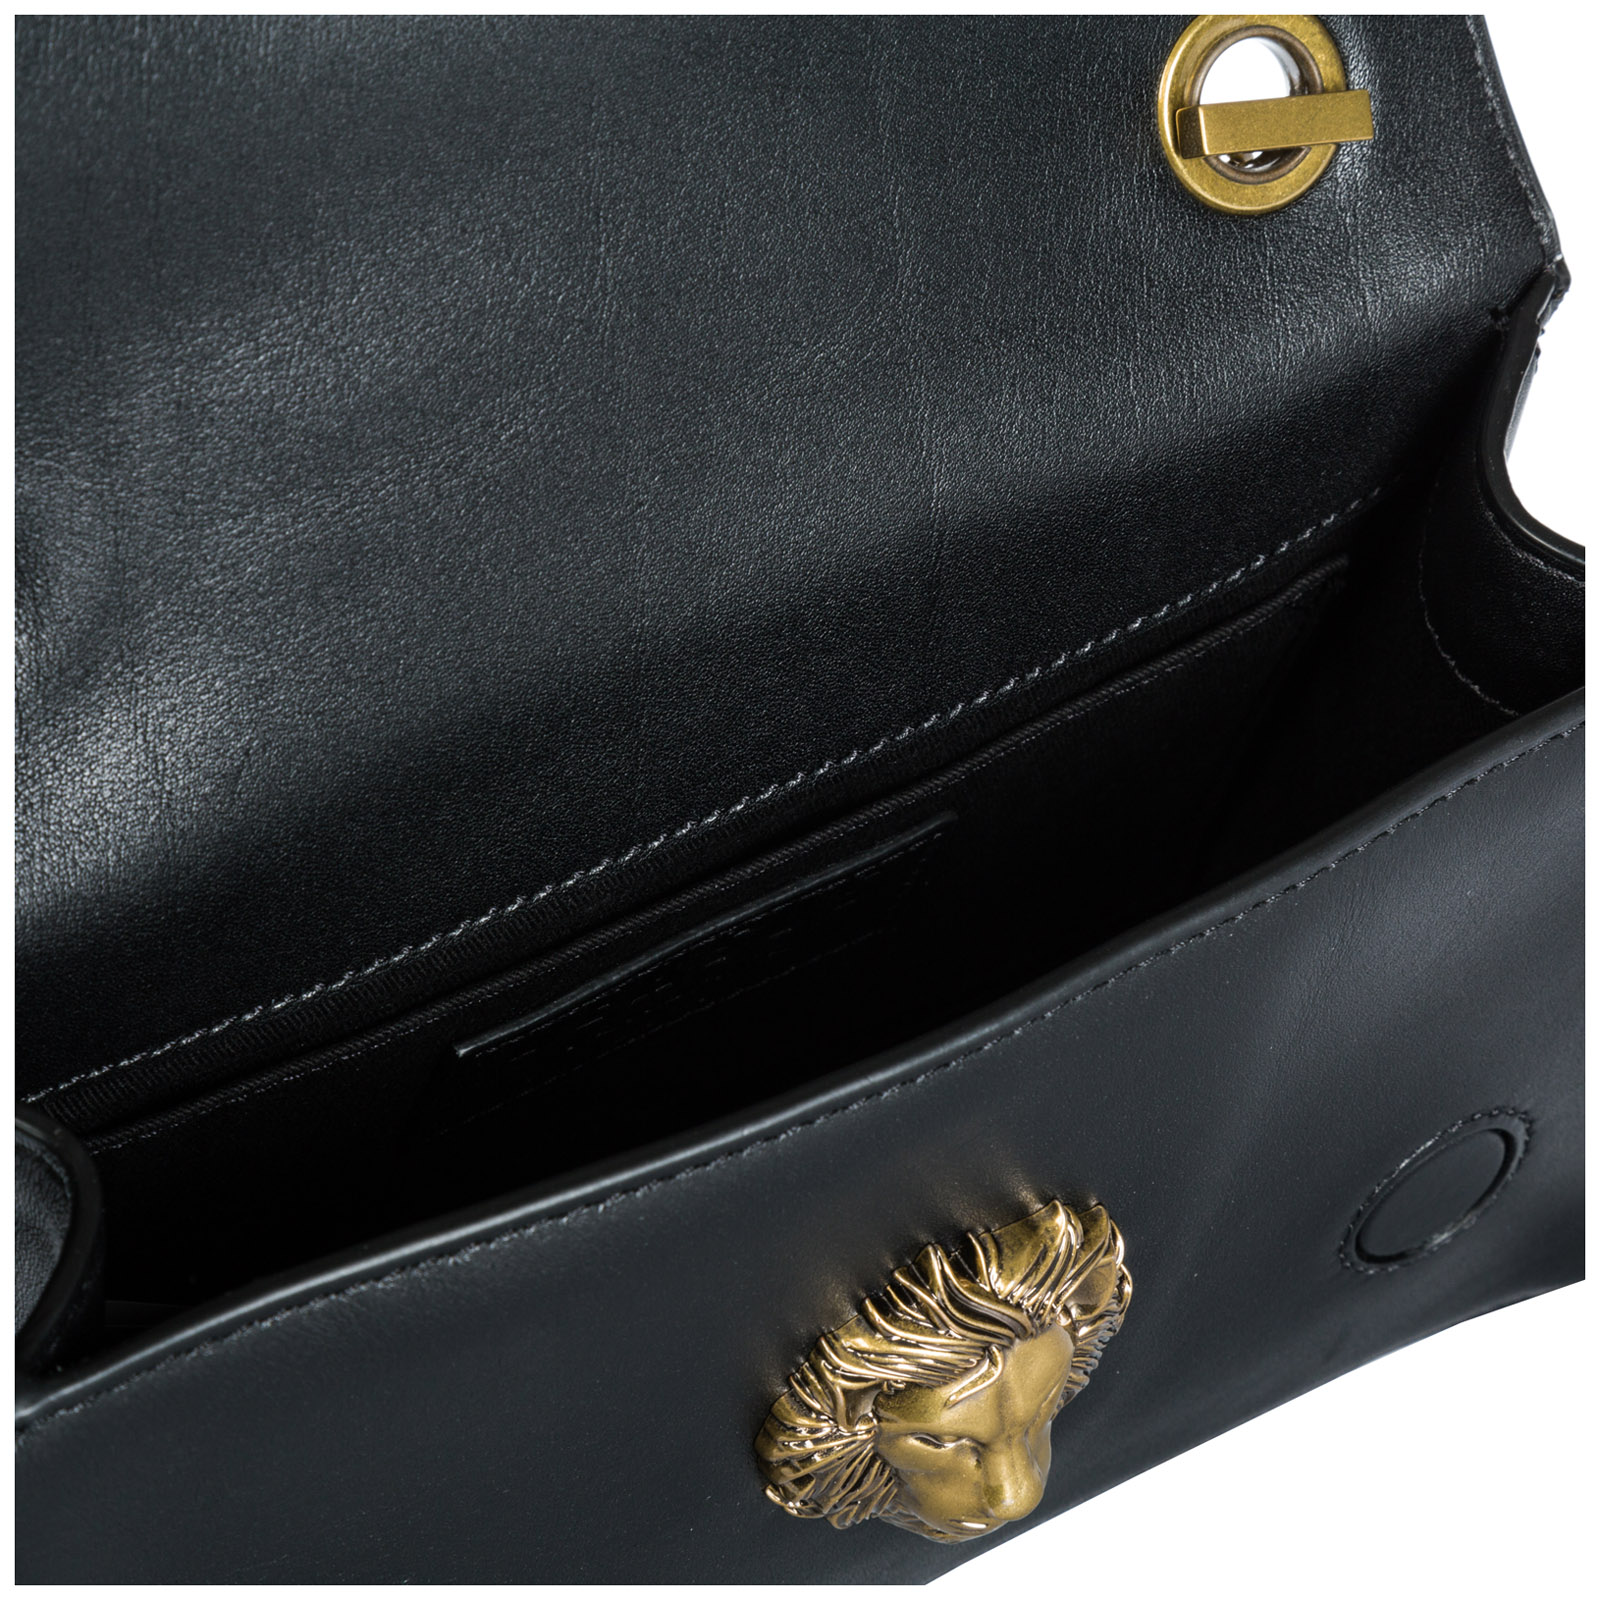 Women's leather clutch with shoulder strap handbag bag purse  lion head